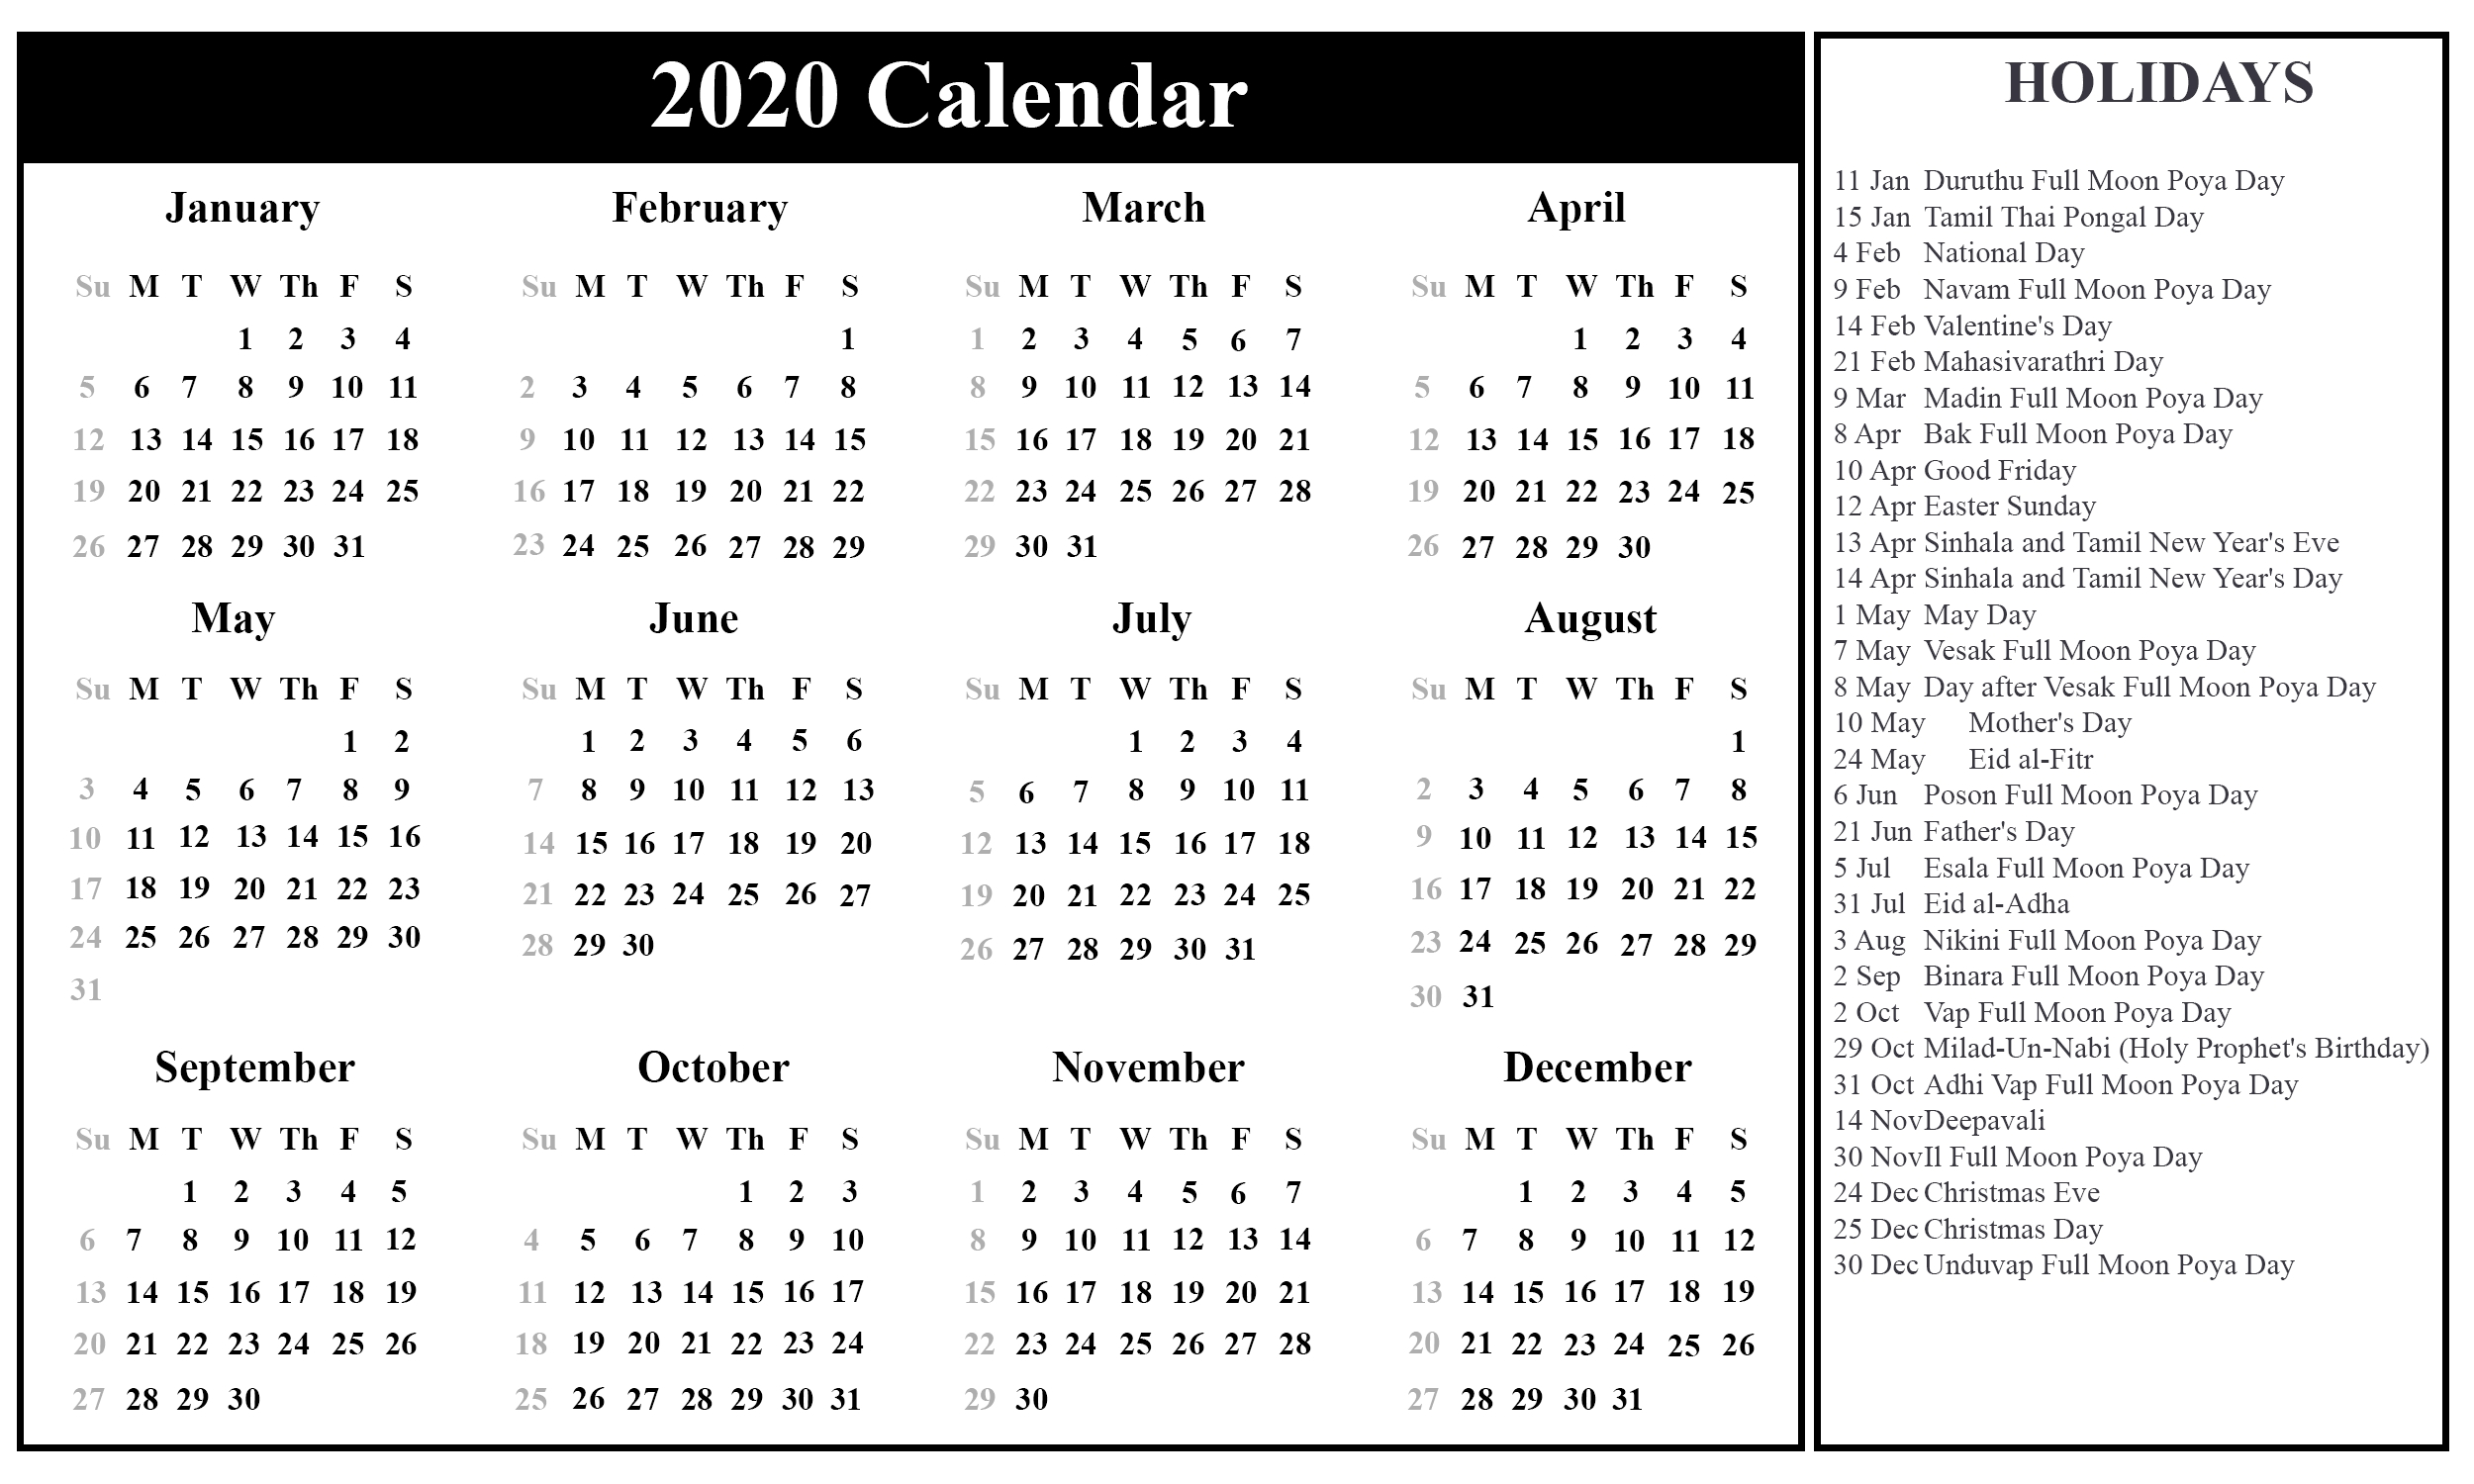 Download Free Sri Lanka Calendar 2020 In Pdf, Excel & Word-2020 Calendar With Religious Holidays